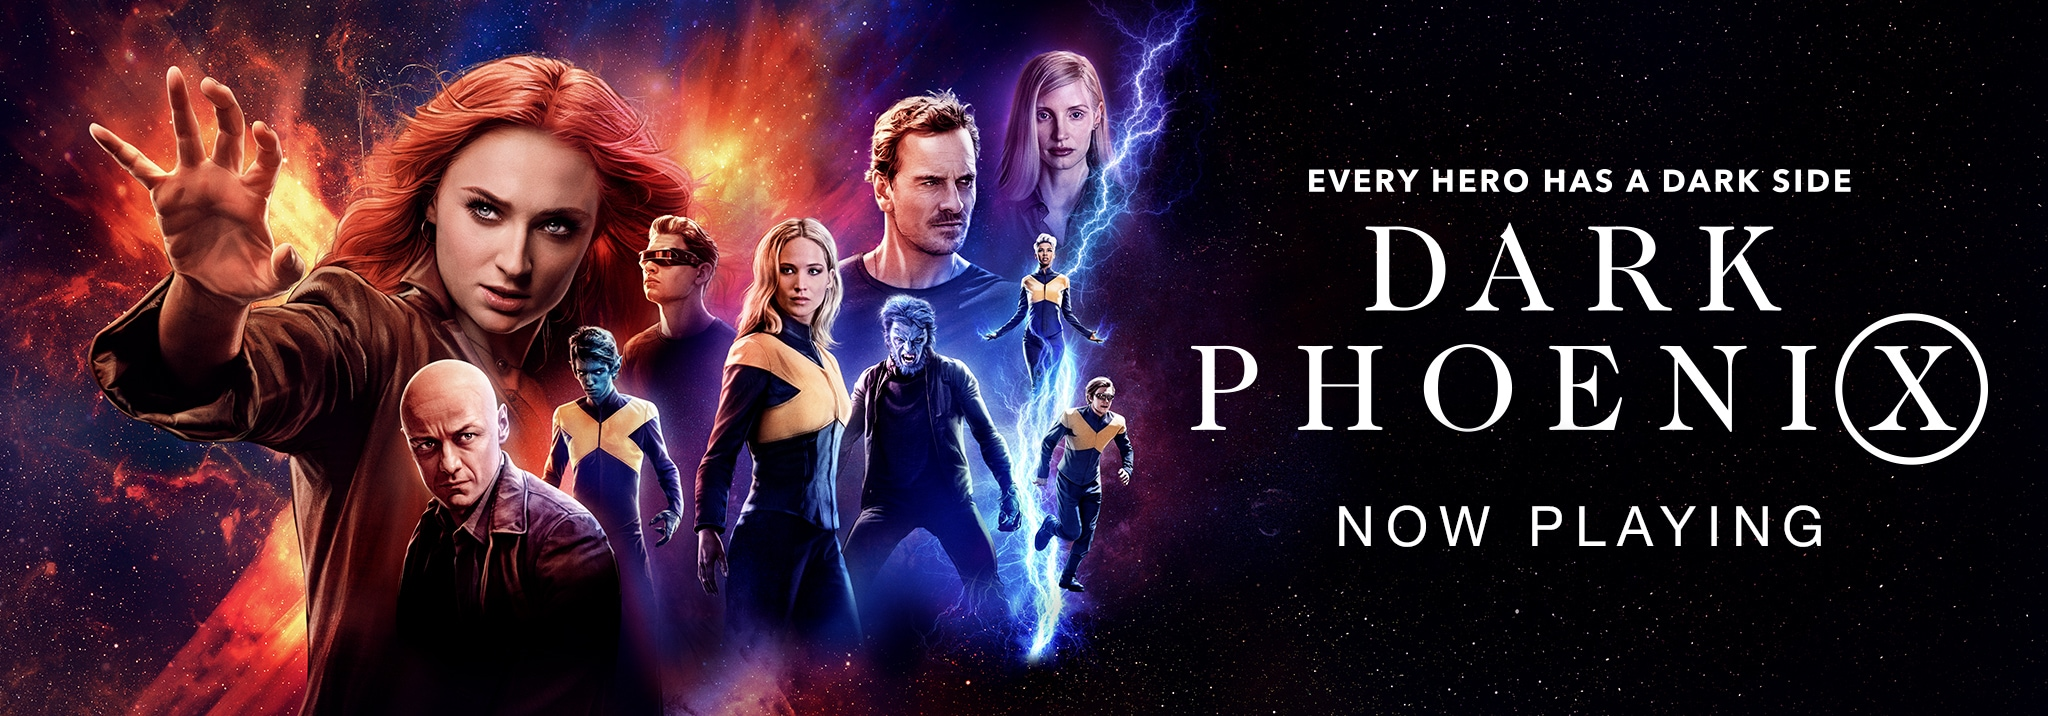 Every Hero Has A Dark Side - Dark Phoenix - Now Playing